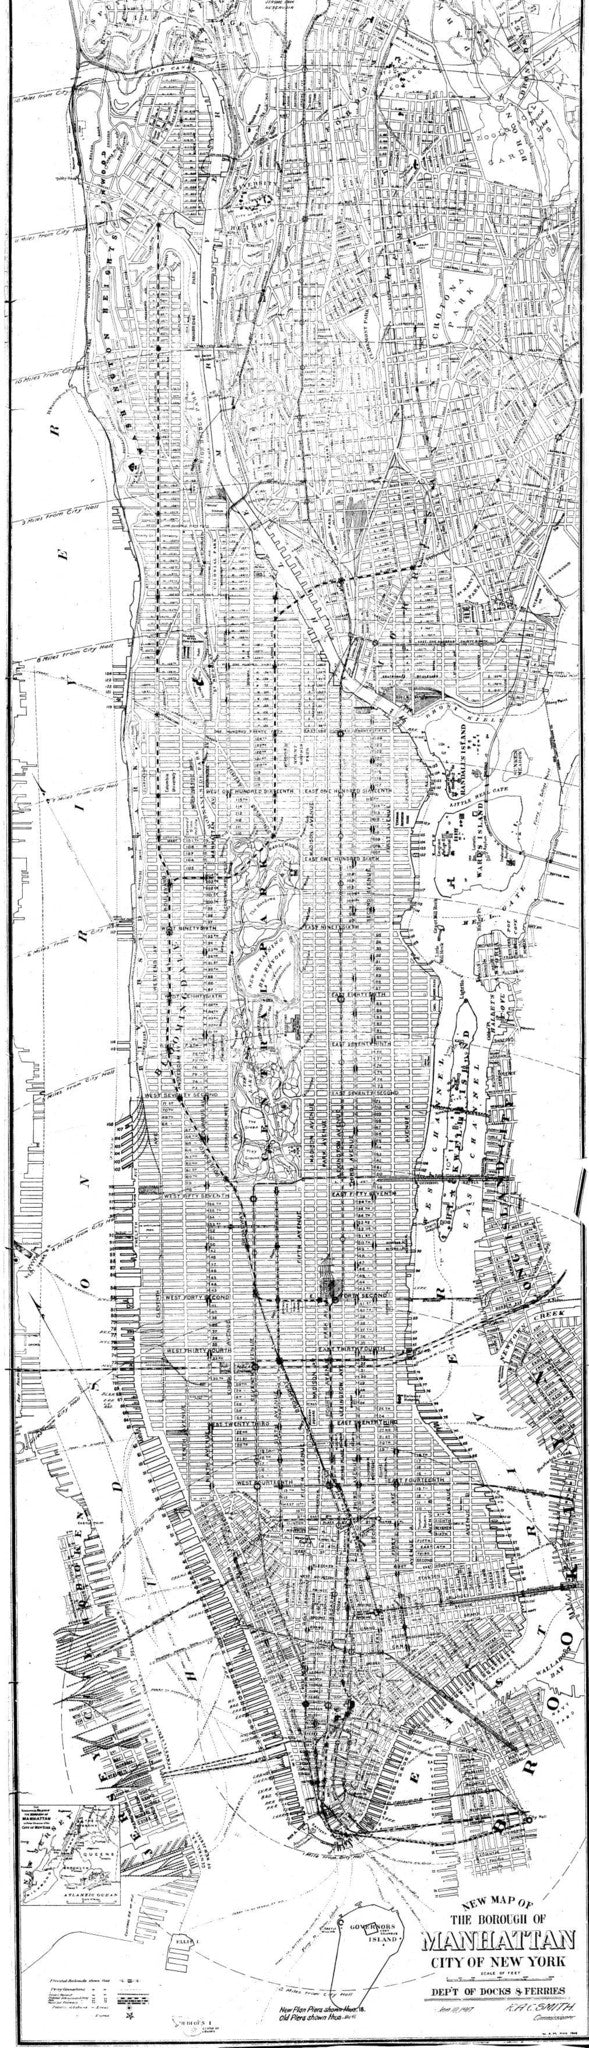 New York Map Black And White.Print Of New Map Of The Borough Of Manhattan City Of New York